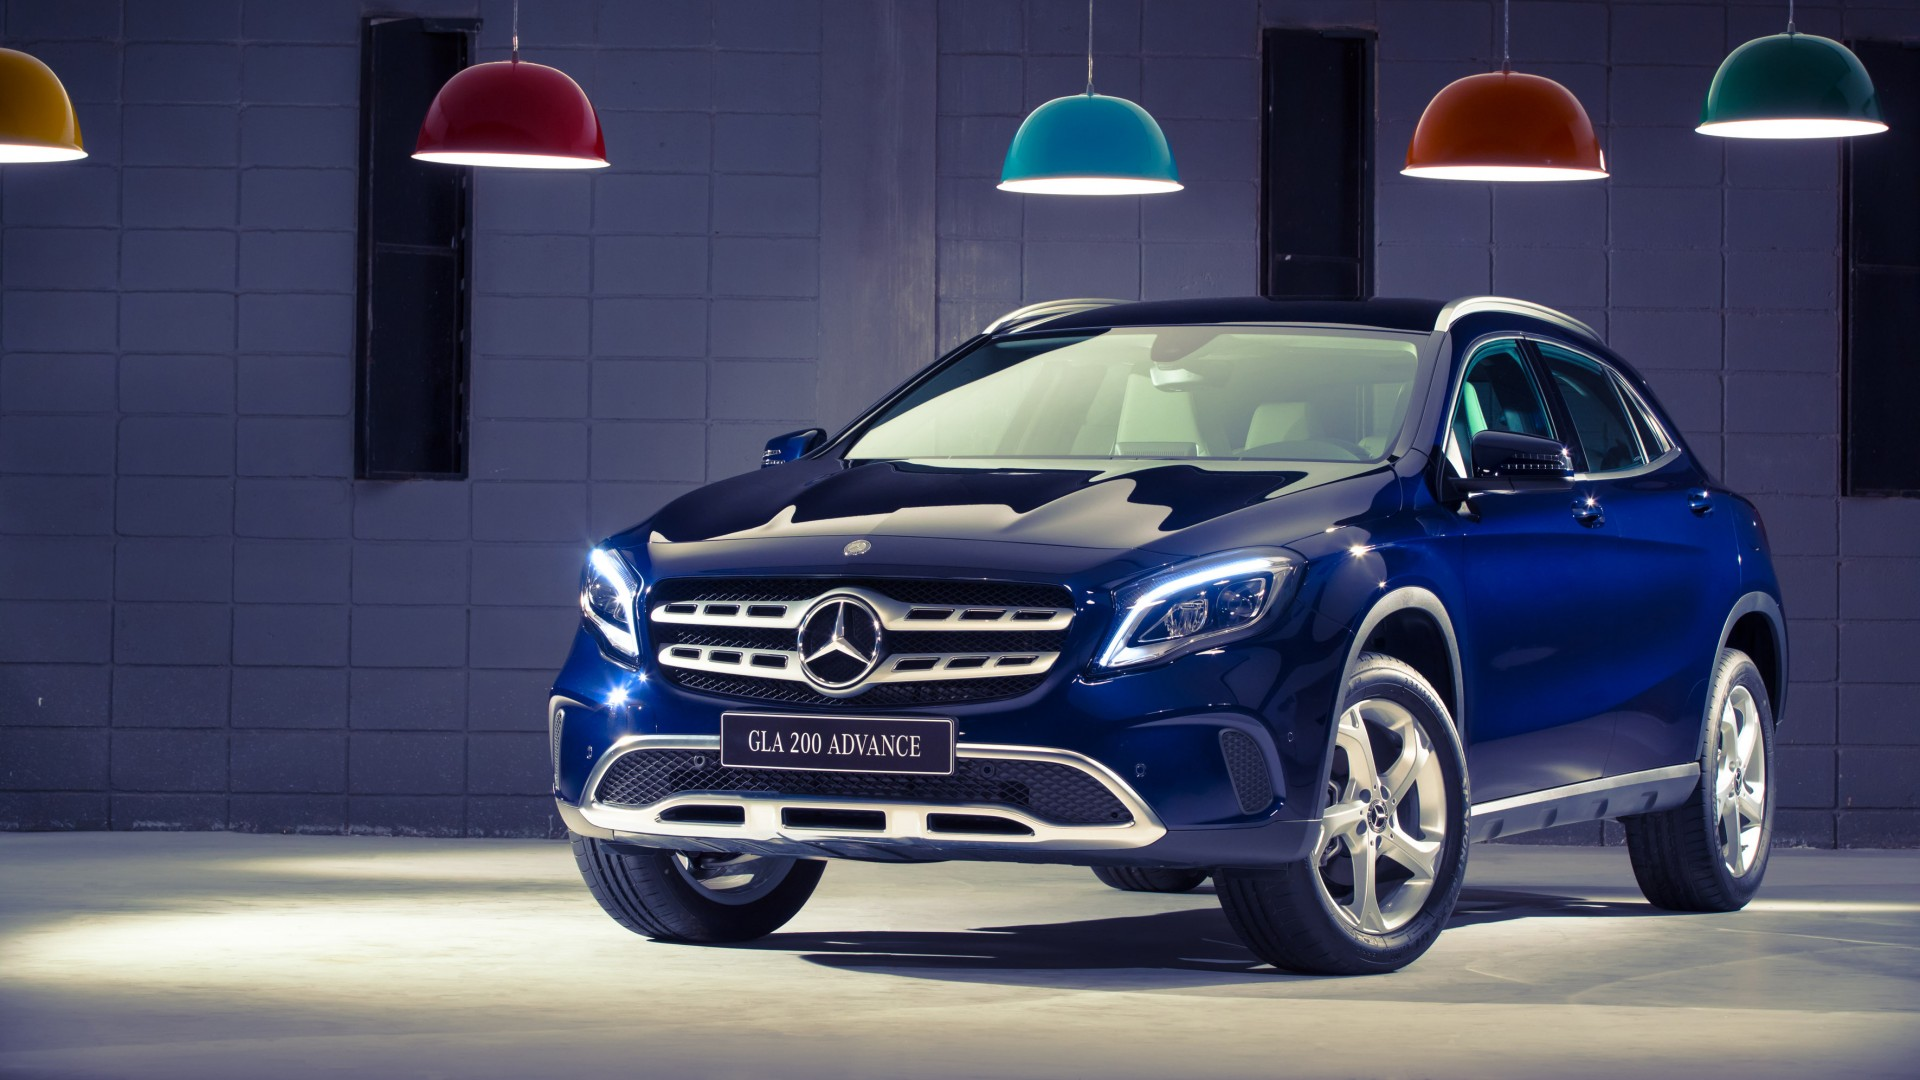 2017 Mercedes Benz GLA 200 Wallpaper | HD Car Wallpapers ...